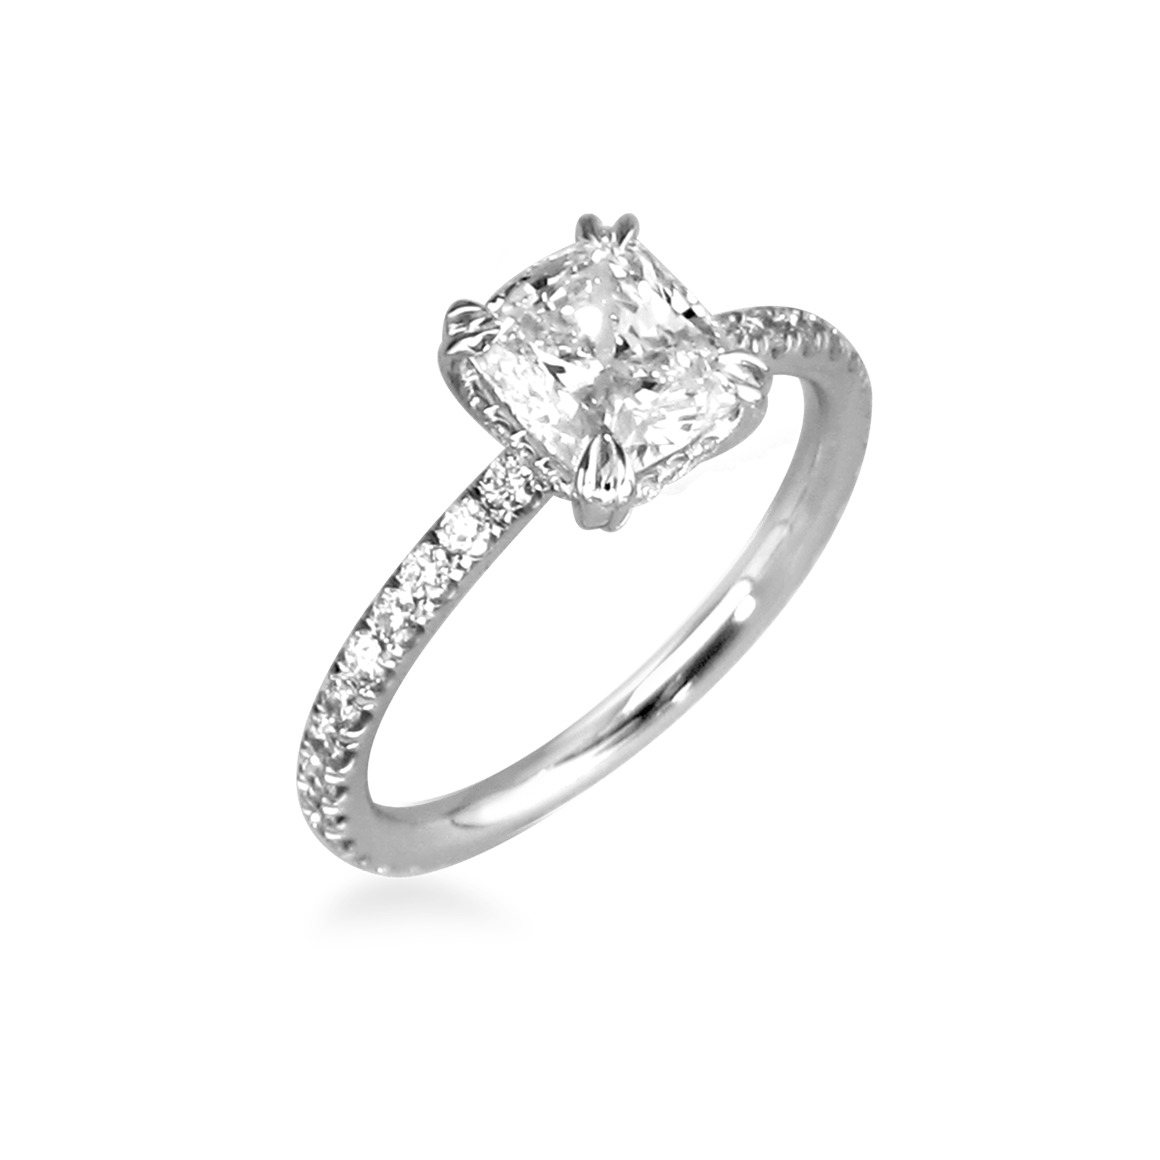 solitaire diamond engagement ring  Welcome to Pompeii3